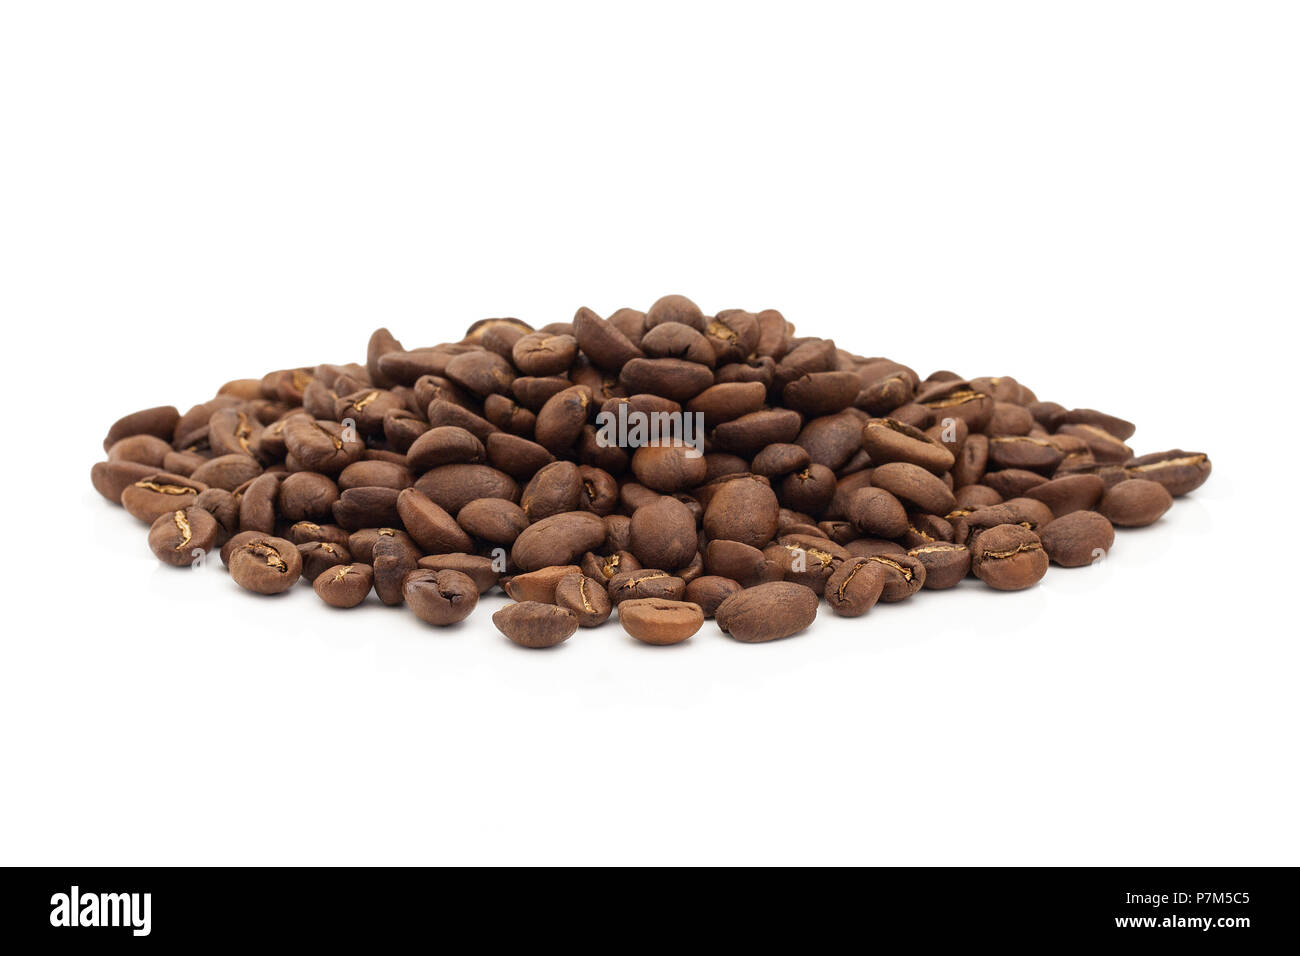 A pile of coffee beans isolated on a white background. - Stock Image